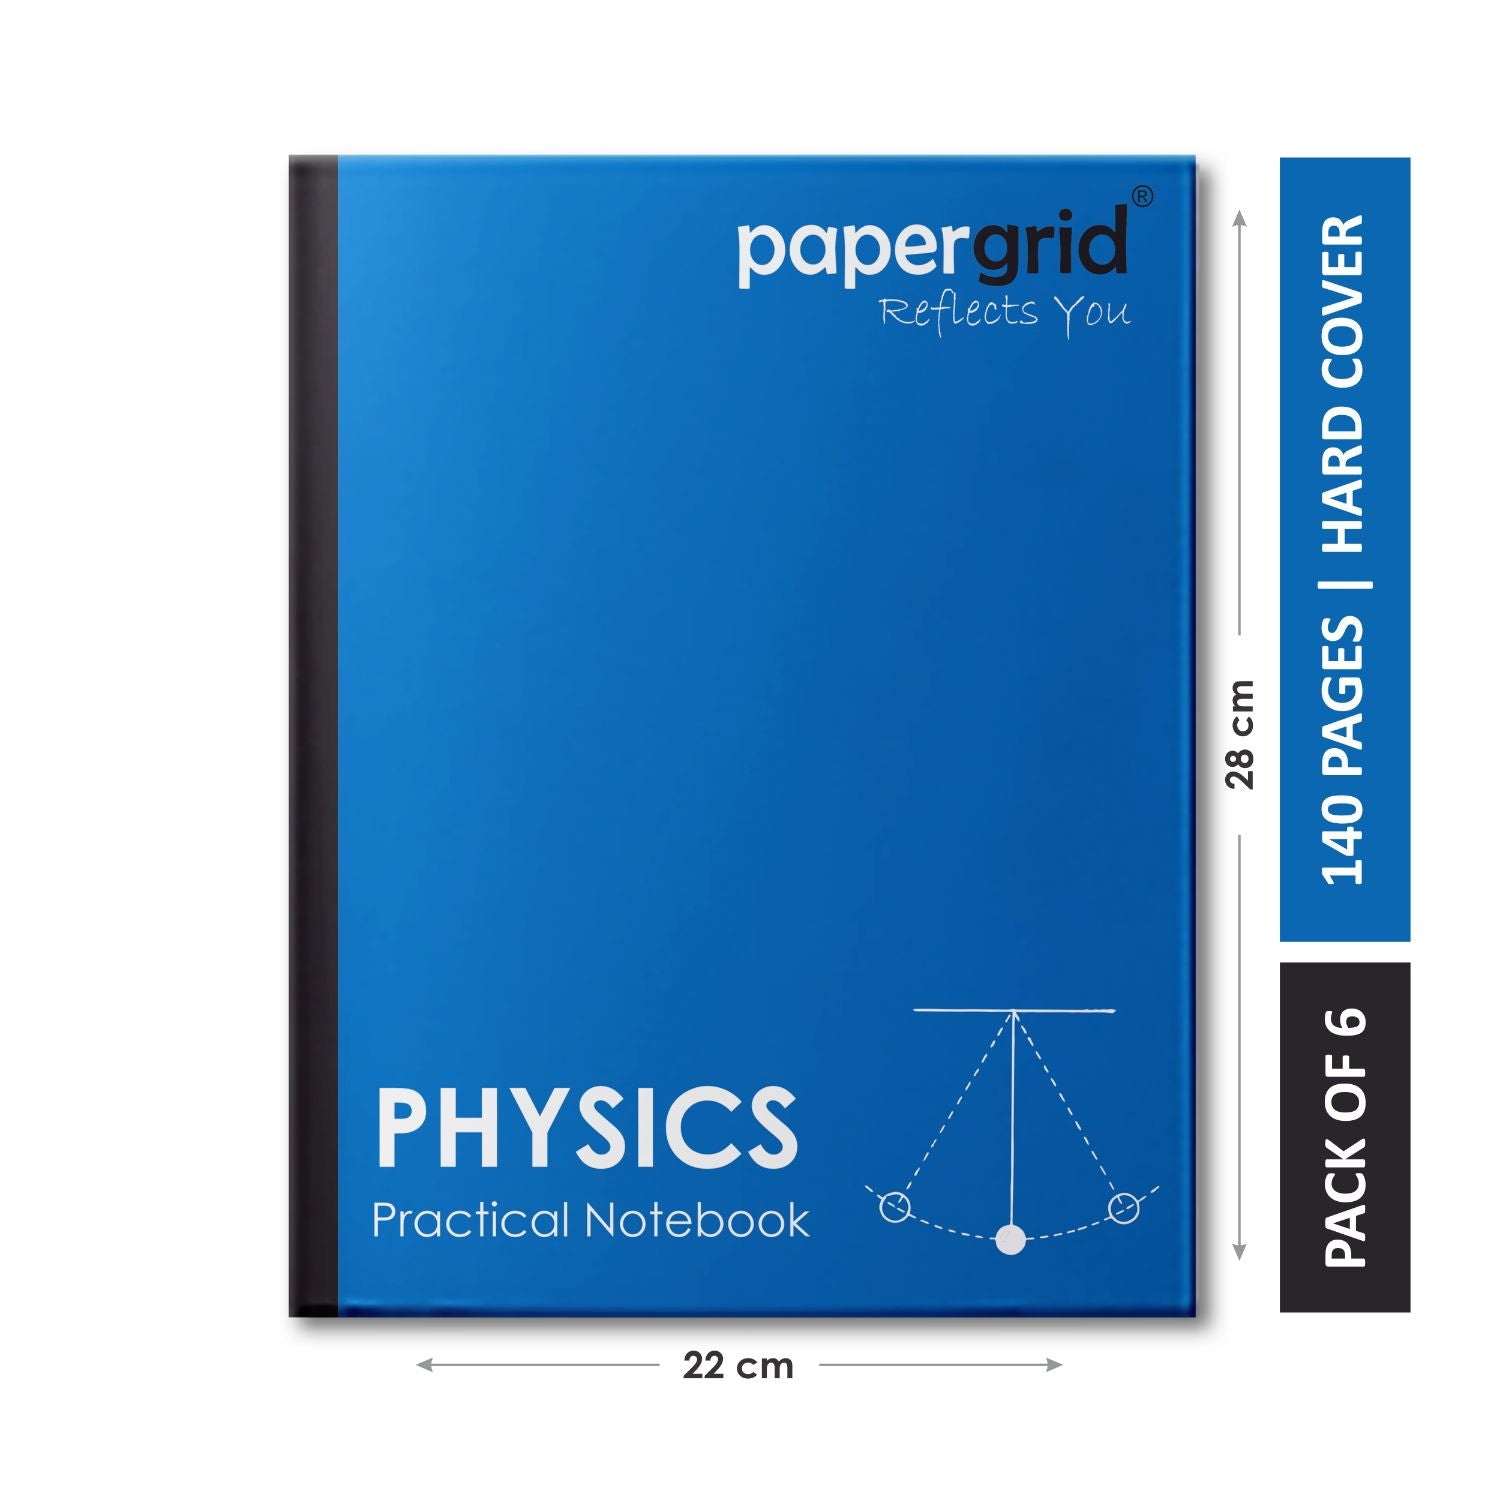 Papergrid Practical Notebook - Physics, 28 cm x 22 cm, 140 Pages, Hard Cover - Pack of 6